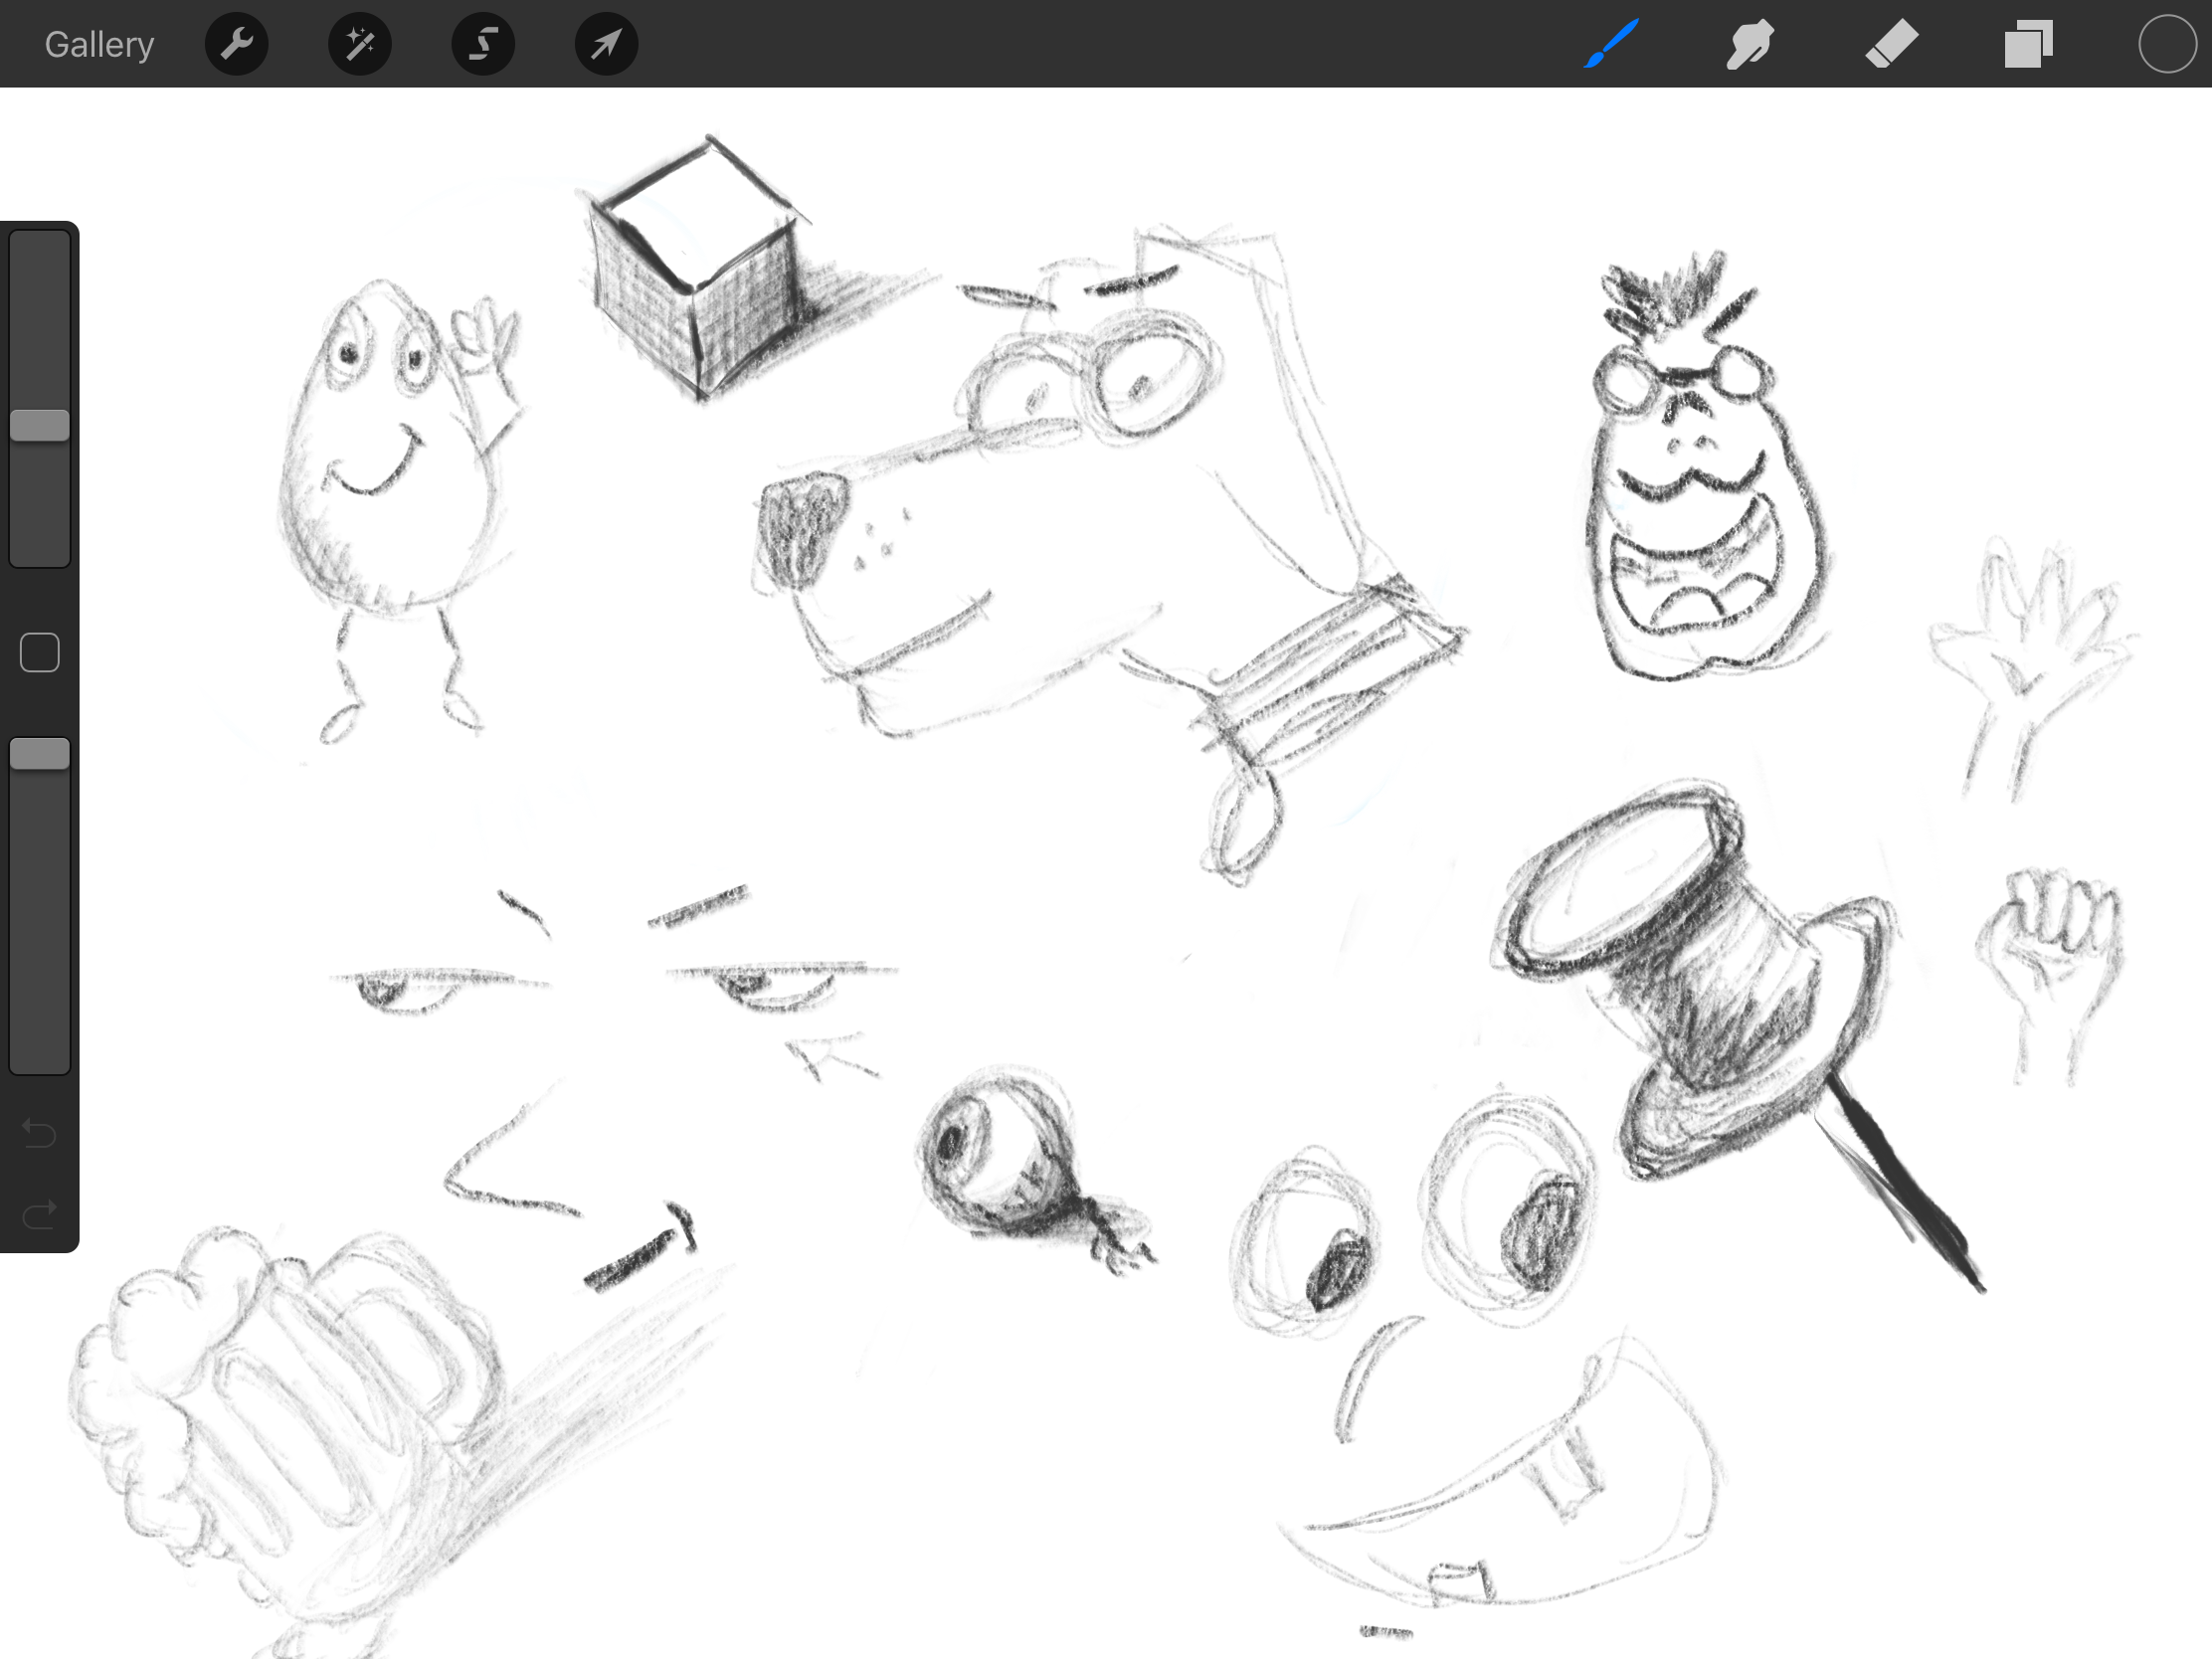 2224x1668 What The Apple Pencil Does Well